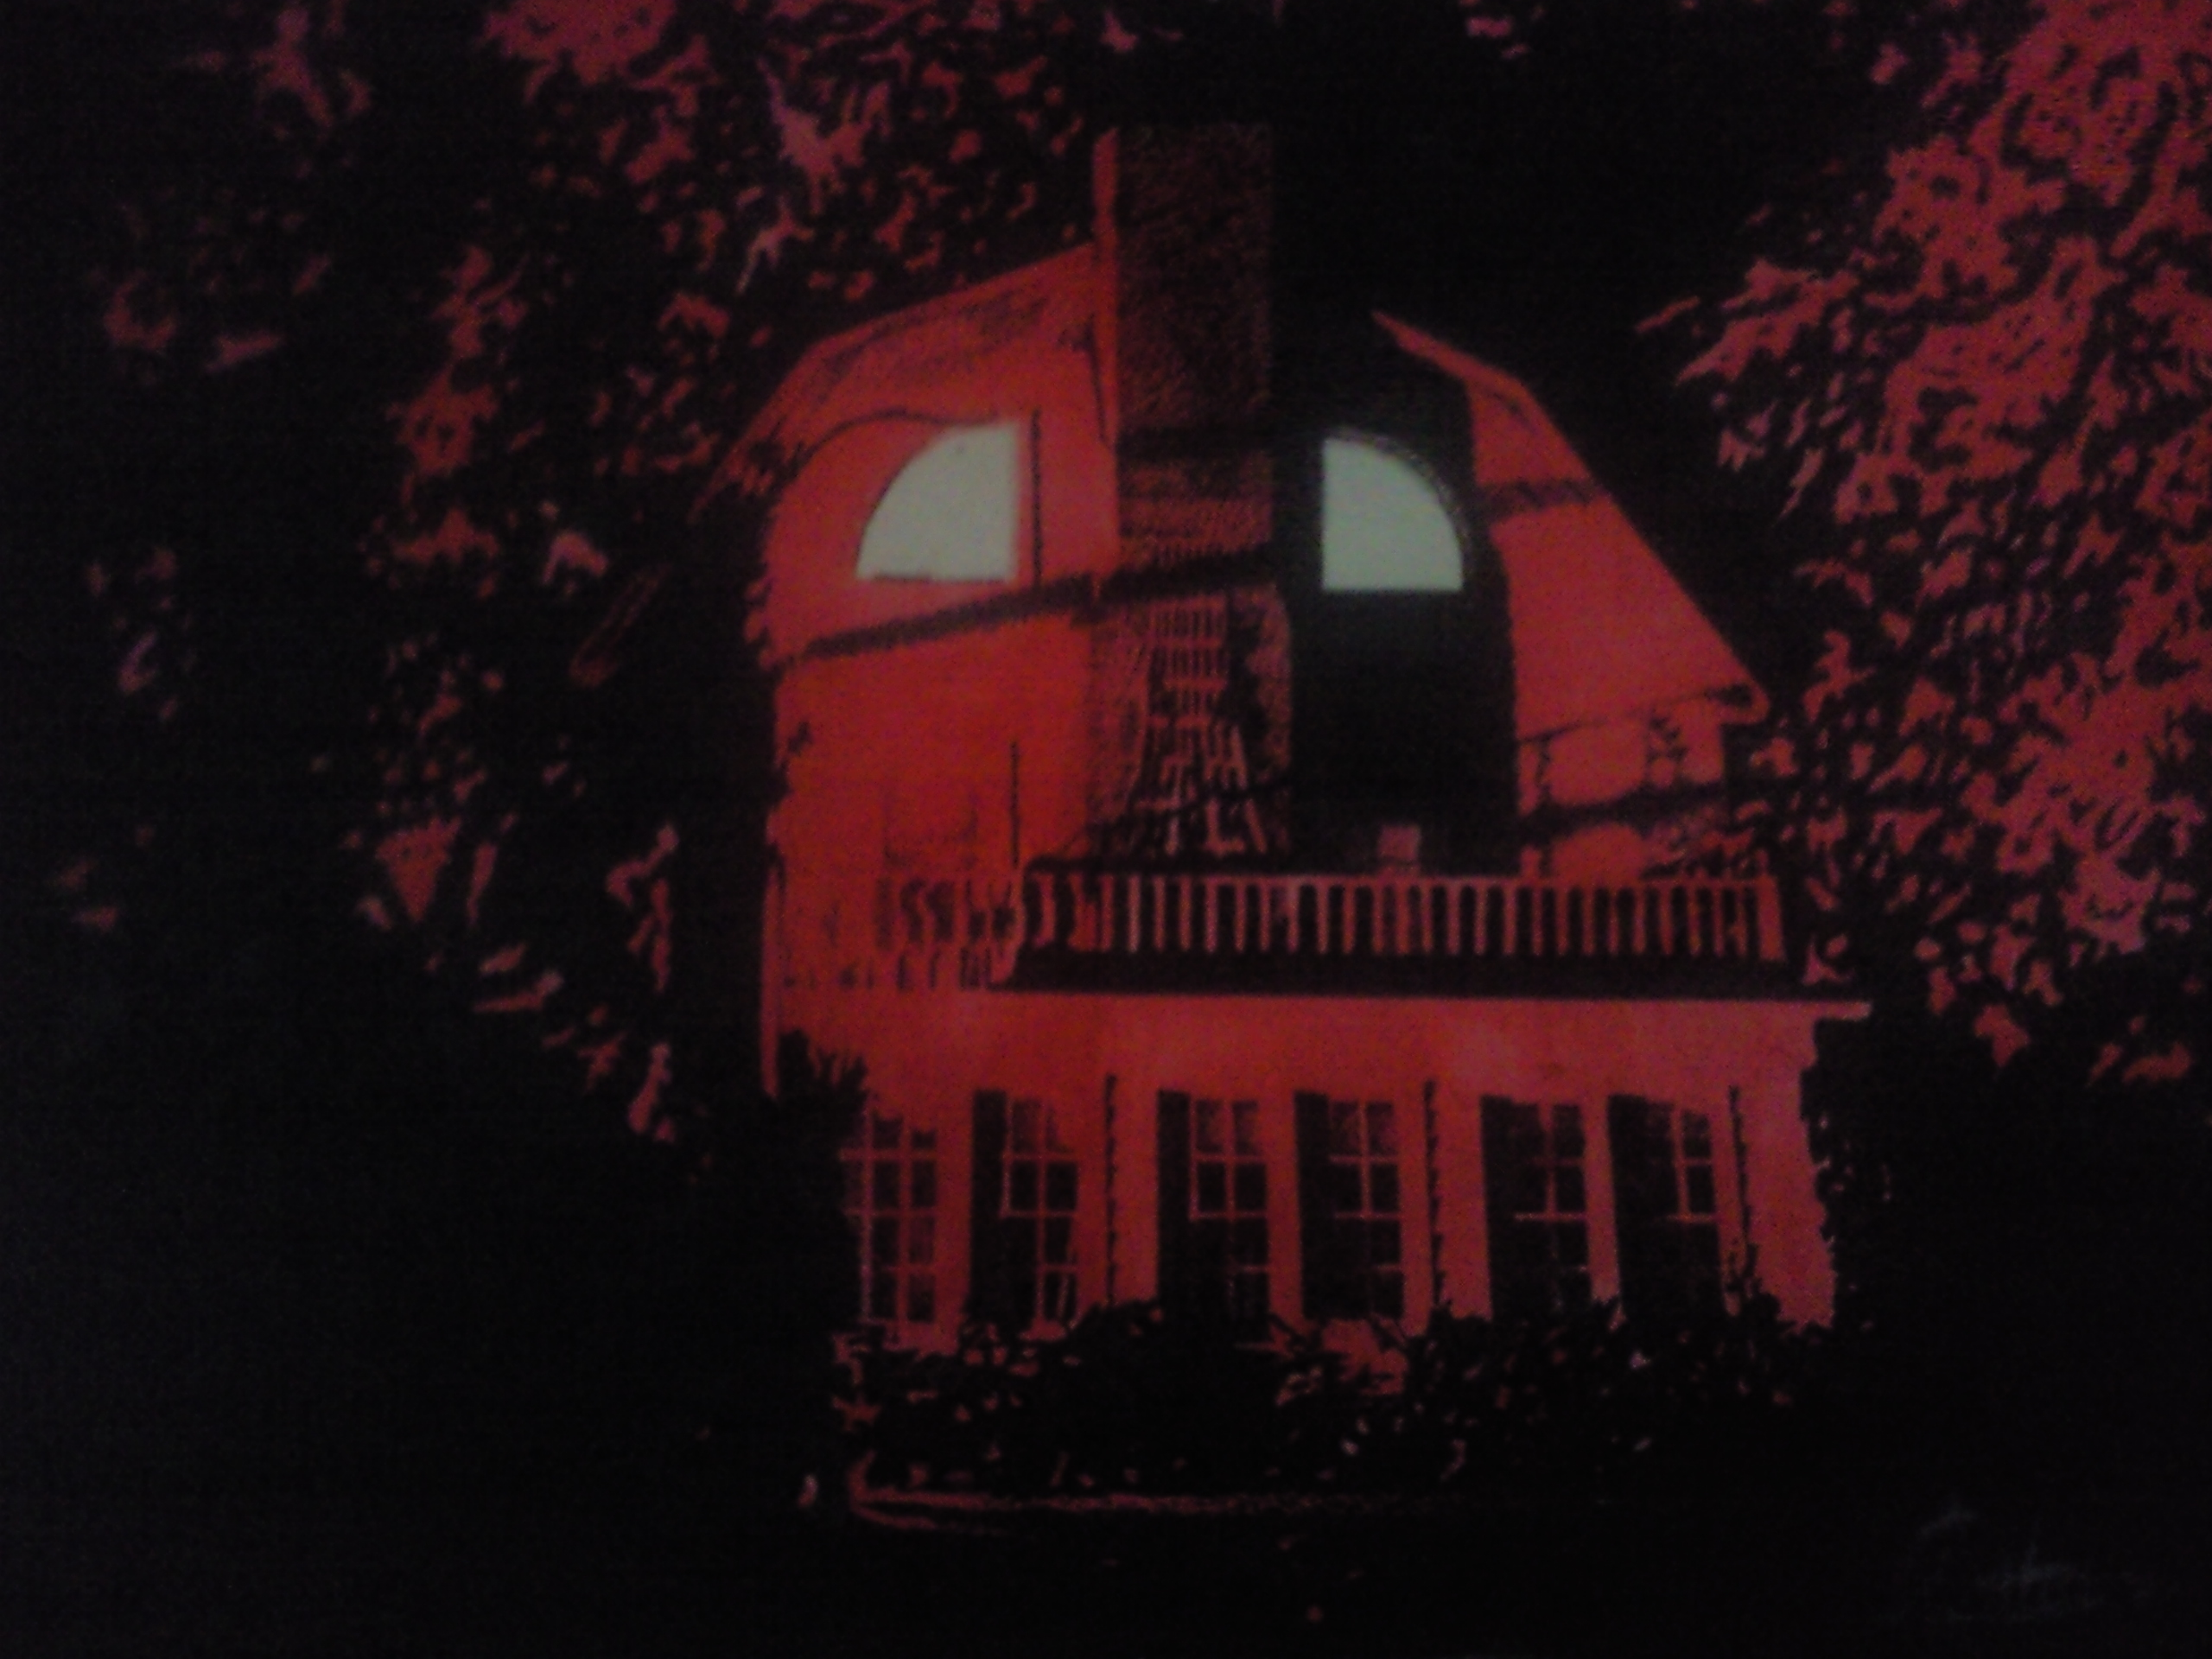 Amityville la maison du diable for Amityville la maison du diable streaming